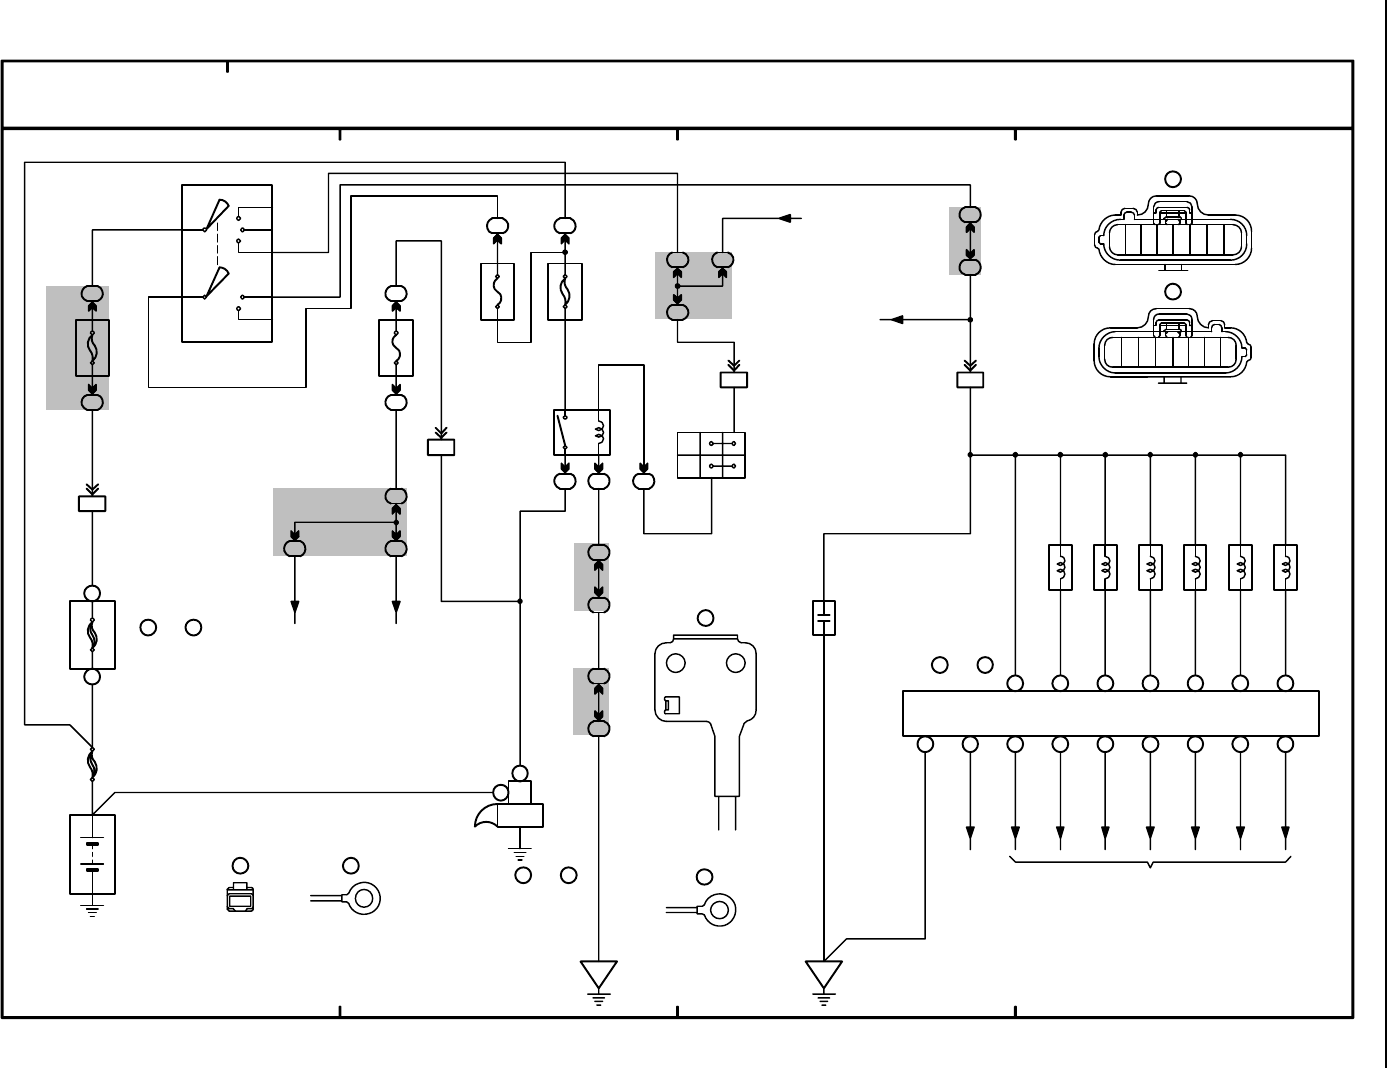 hb5 9007 wiring diagram h3 wiring diagram